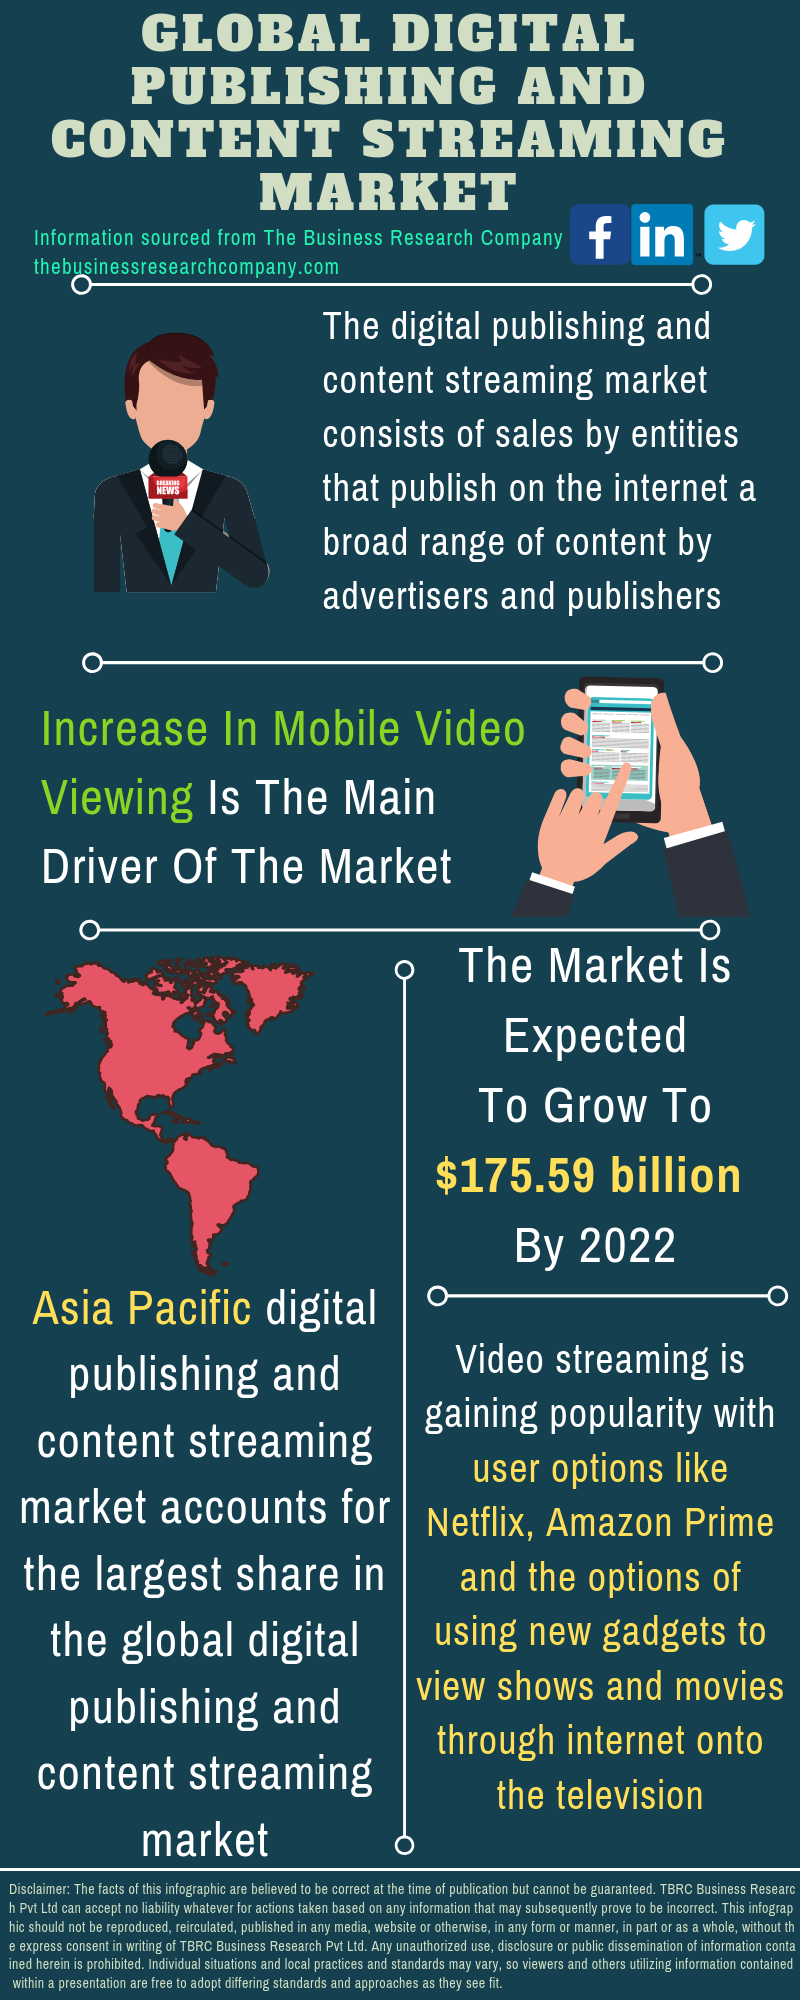 Digital Publishing And Content Streaming Market